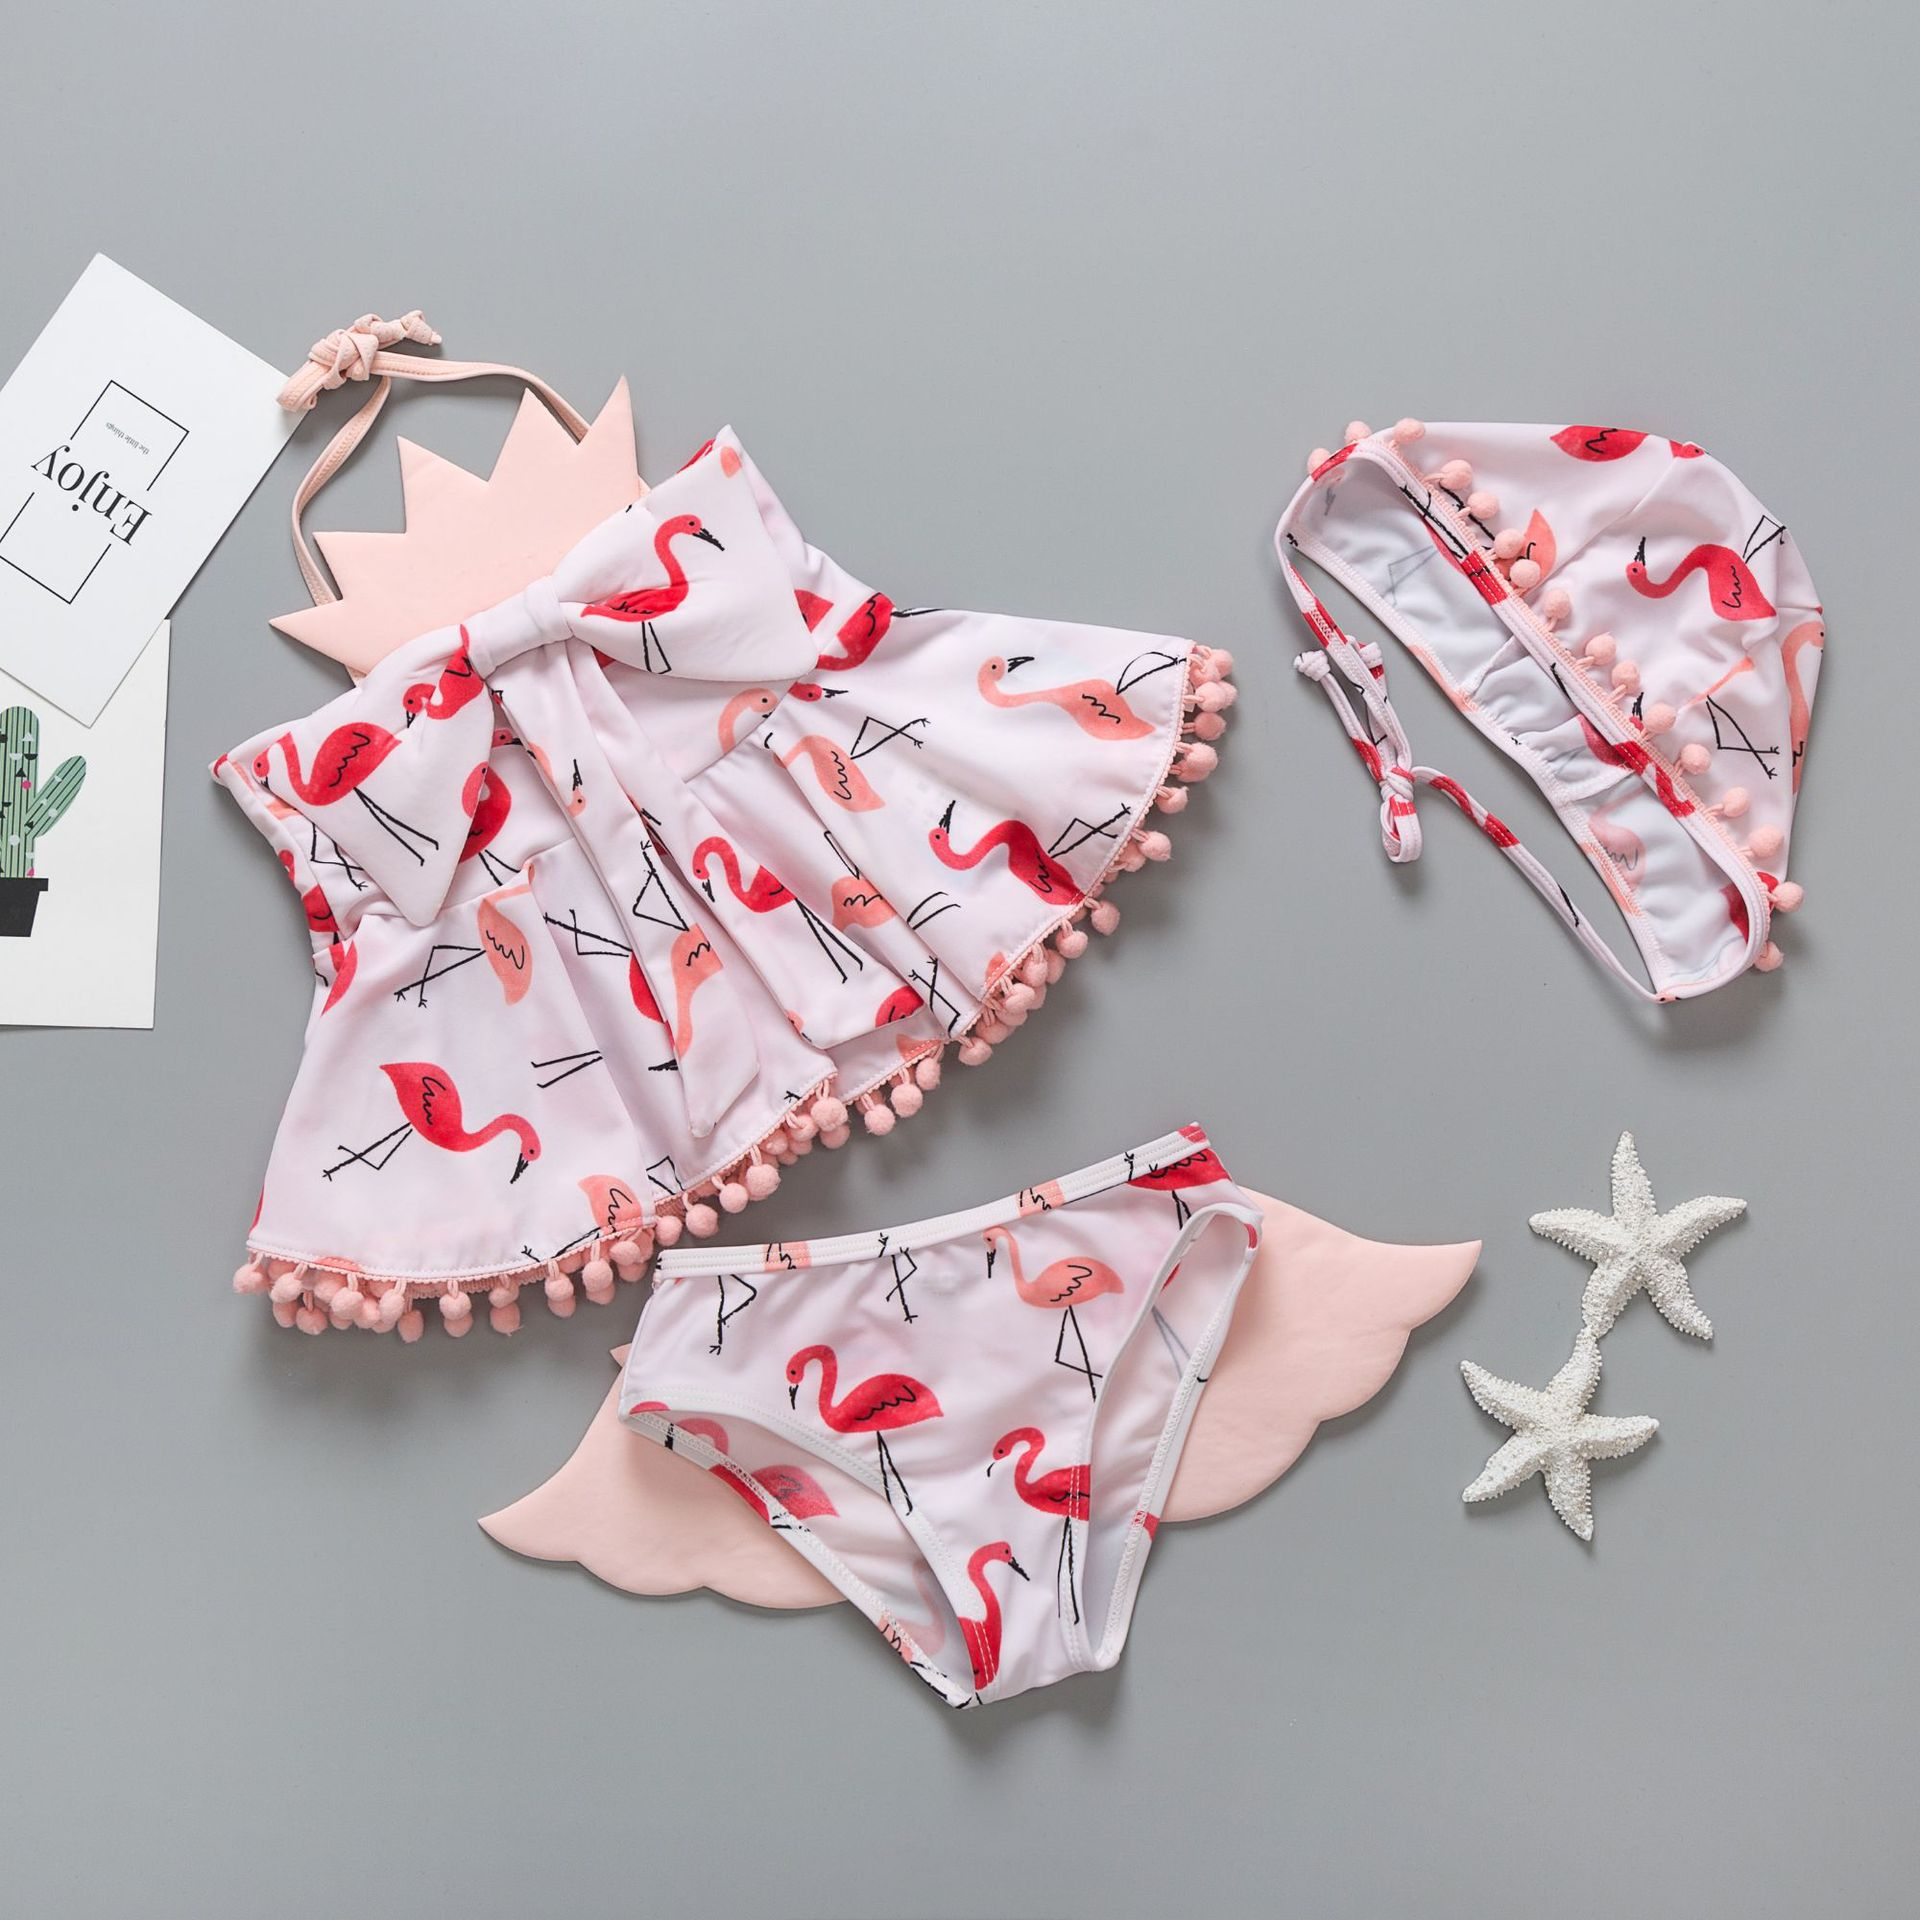 Wholesale Cartoon Animal Firebird Girls' Two-piece Swimsuit Chinlon Bow Liu Su Qiu With Cap Korean-style KID'S Swimwear